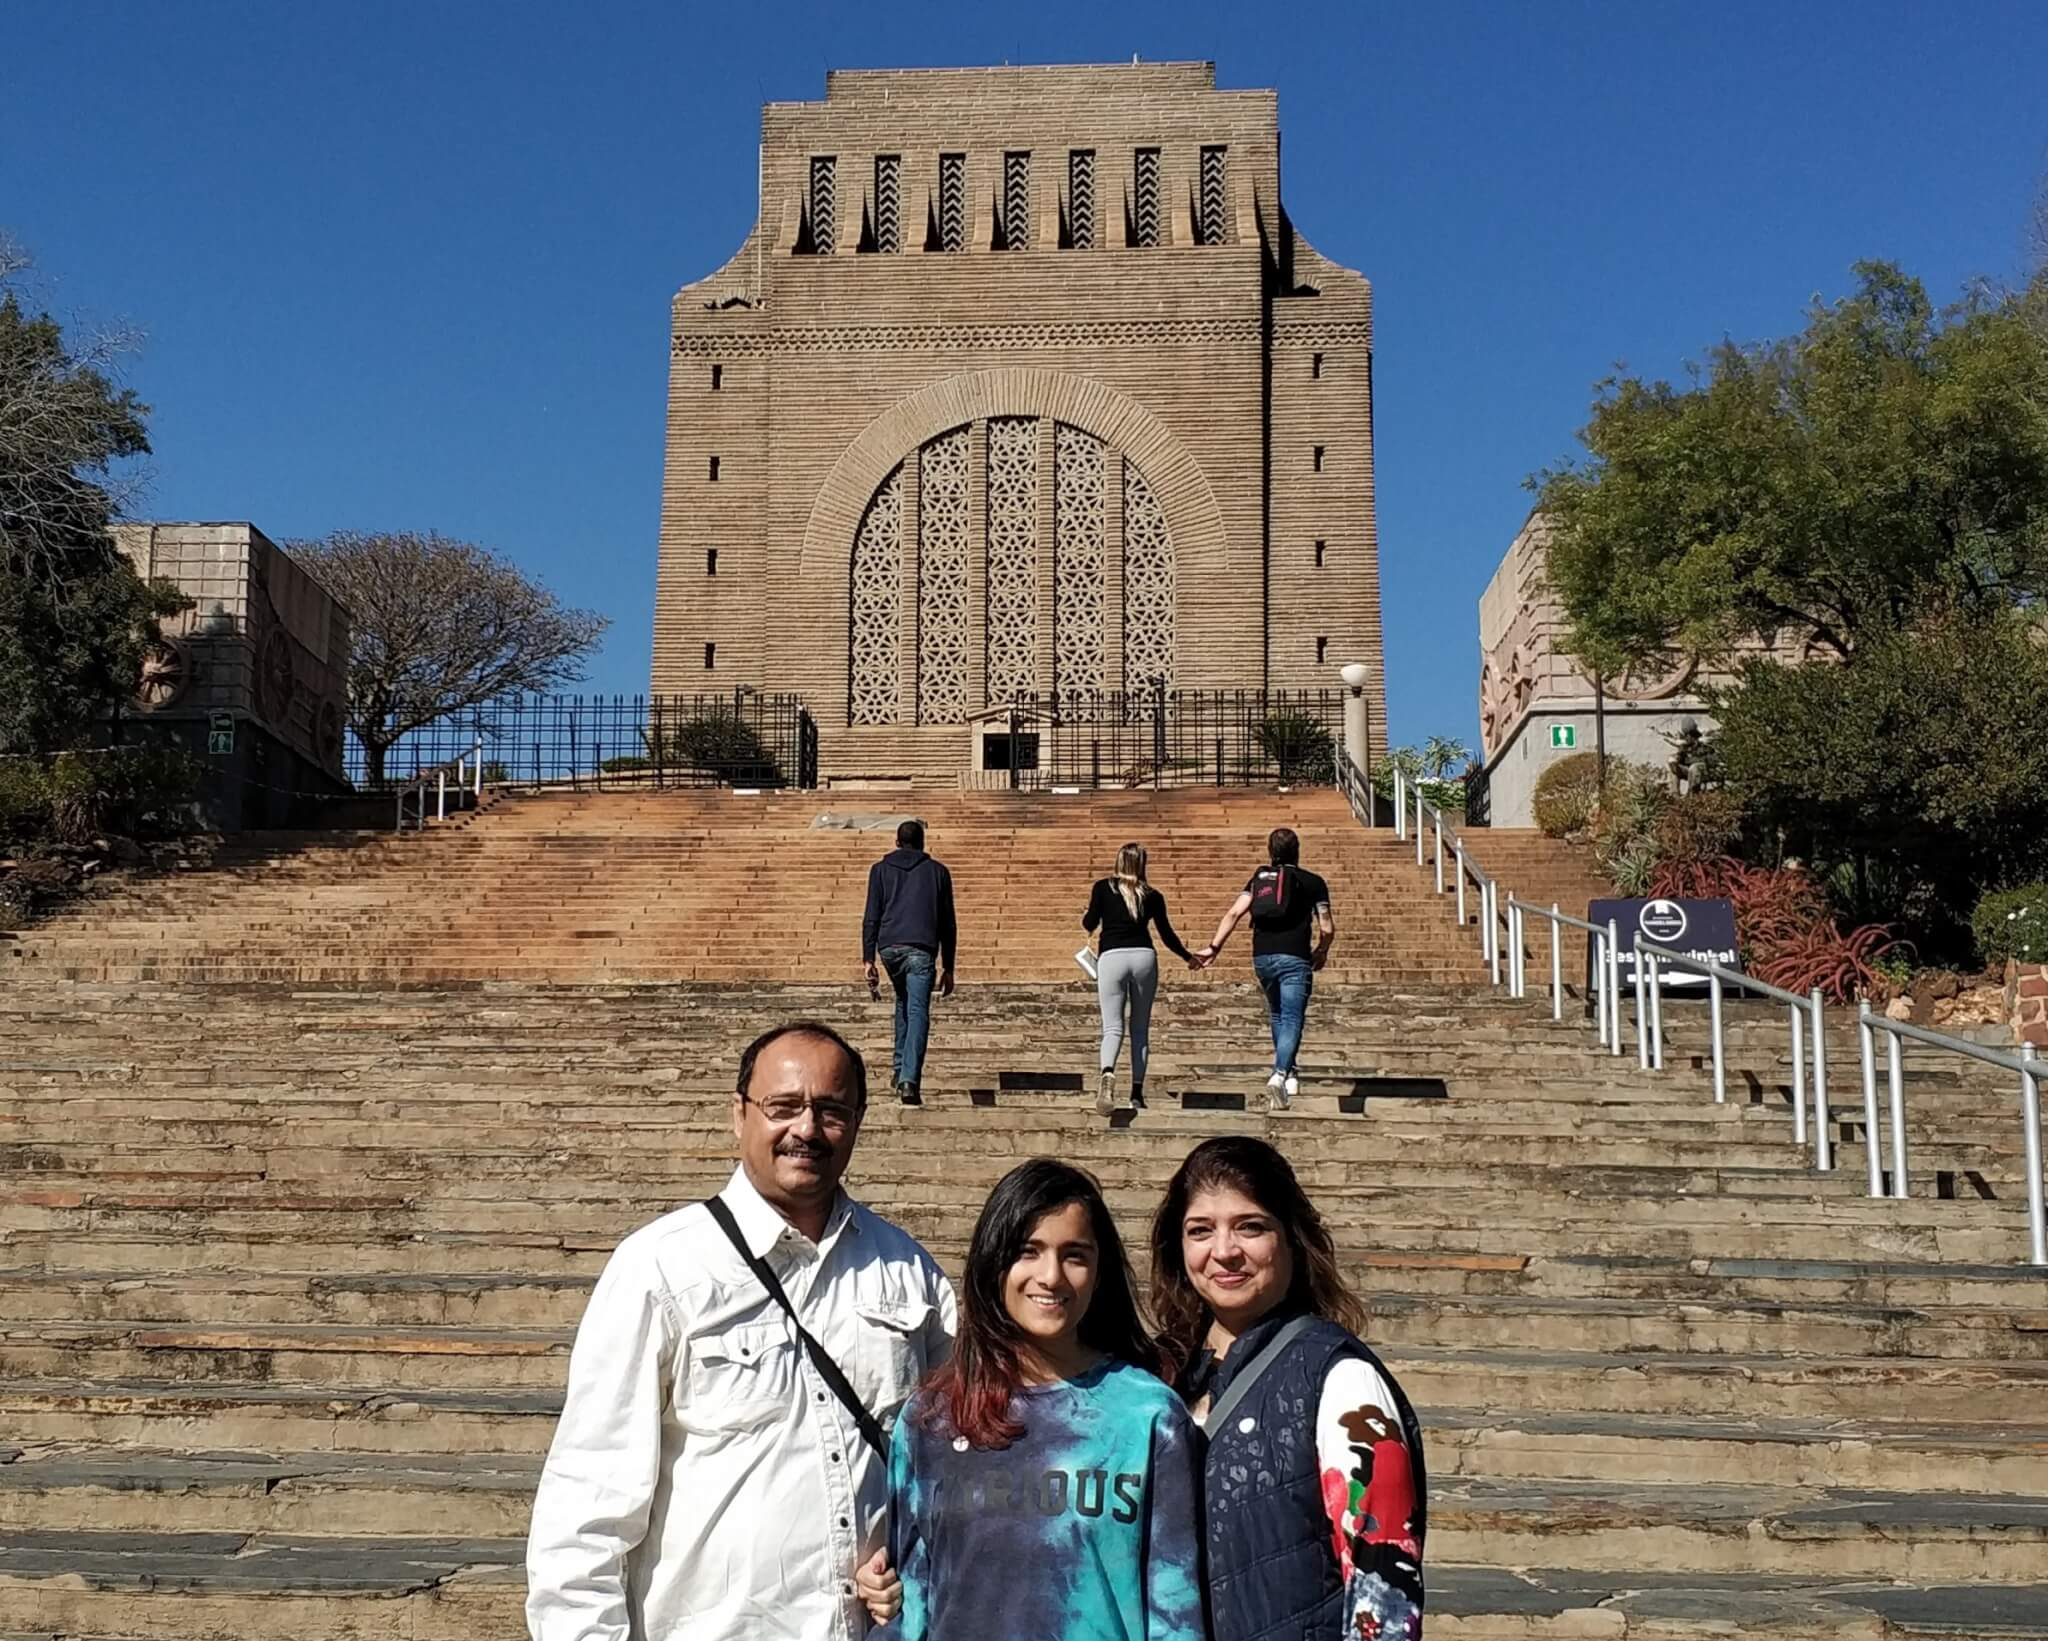 Voortrekker Monument, Pretoria. South Africa